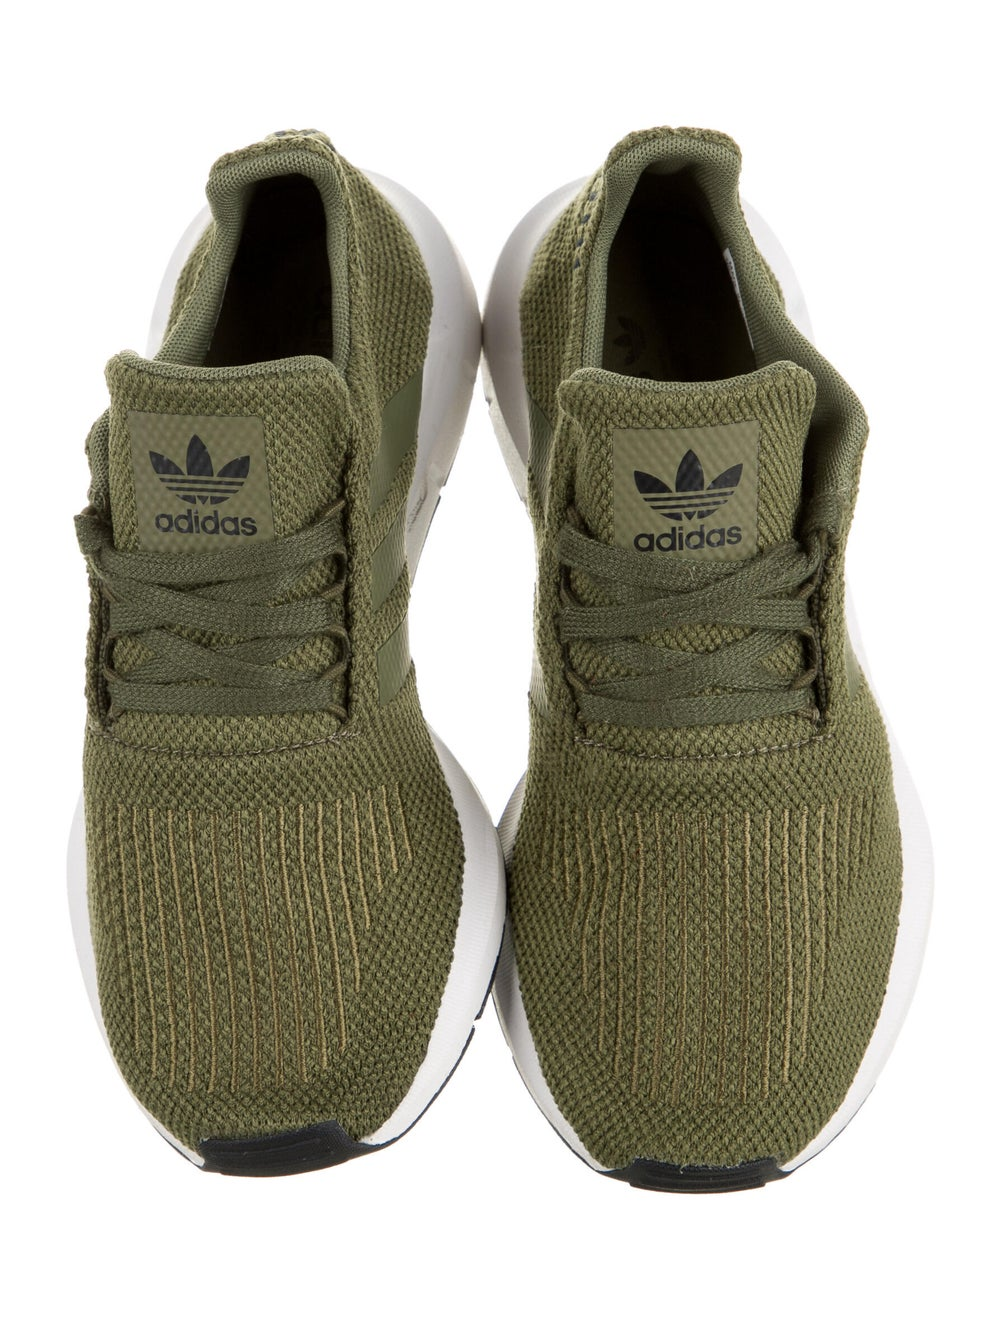 Adidas Athletic Sneakers Green - image 3